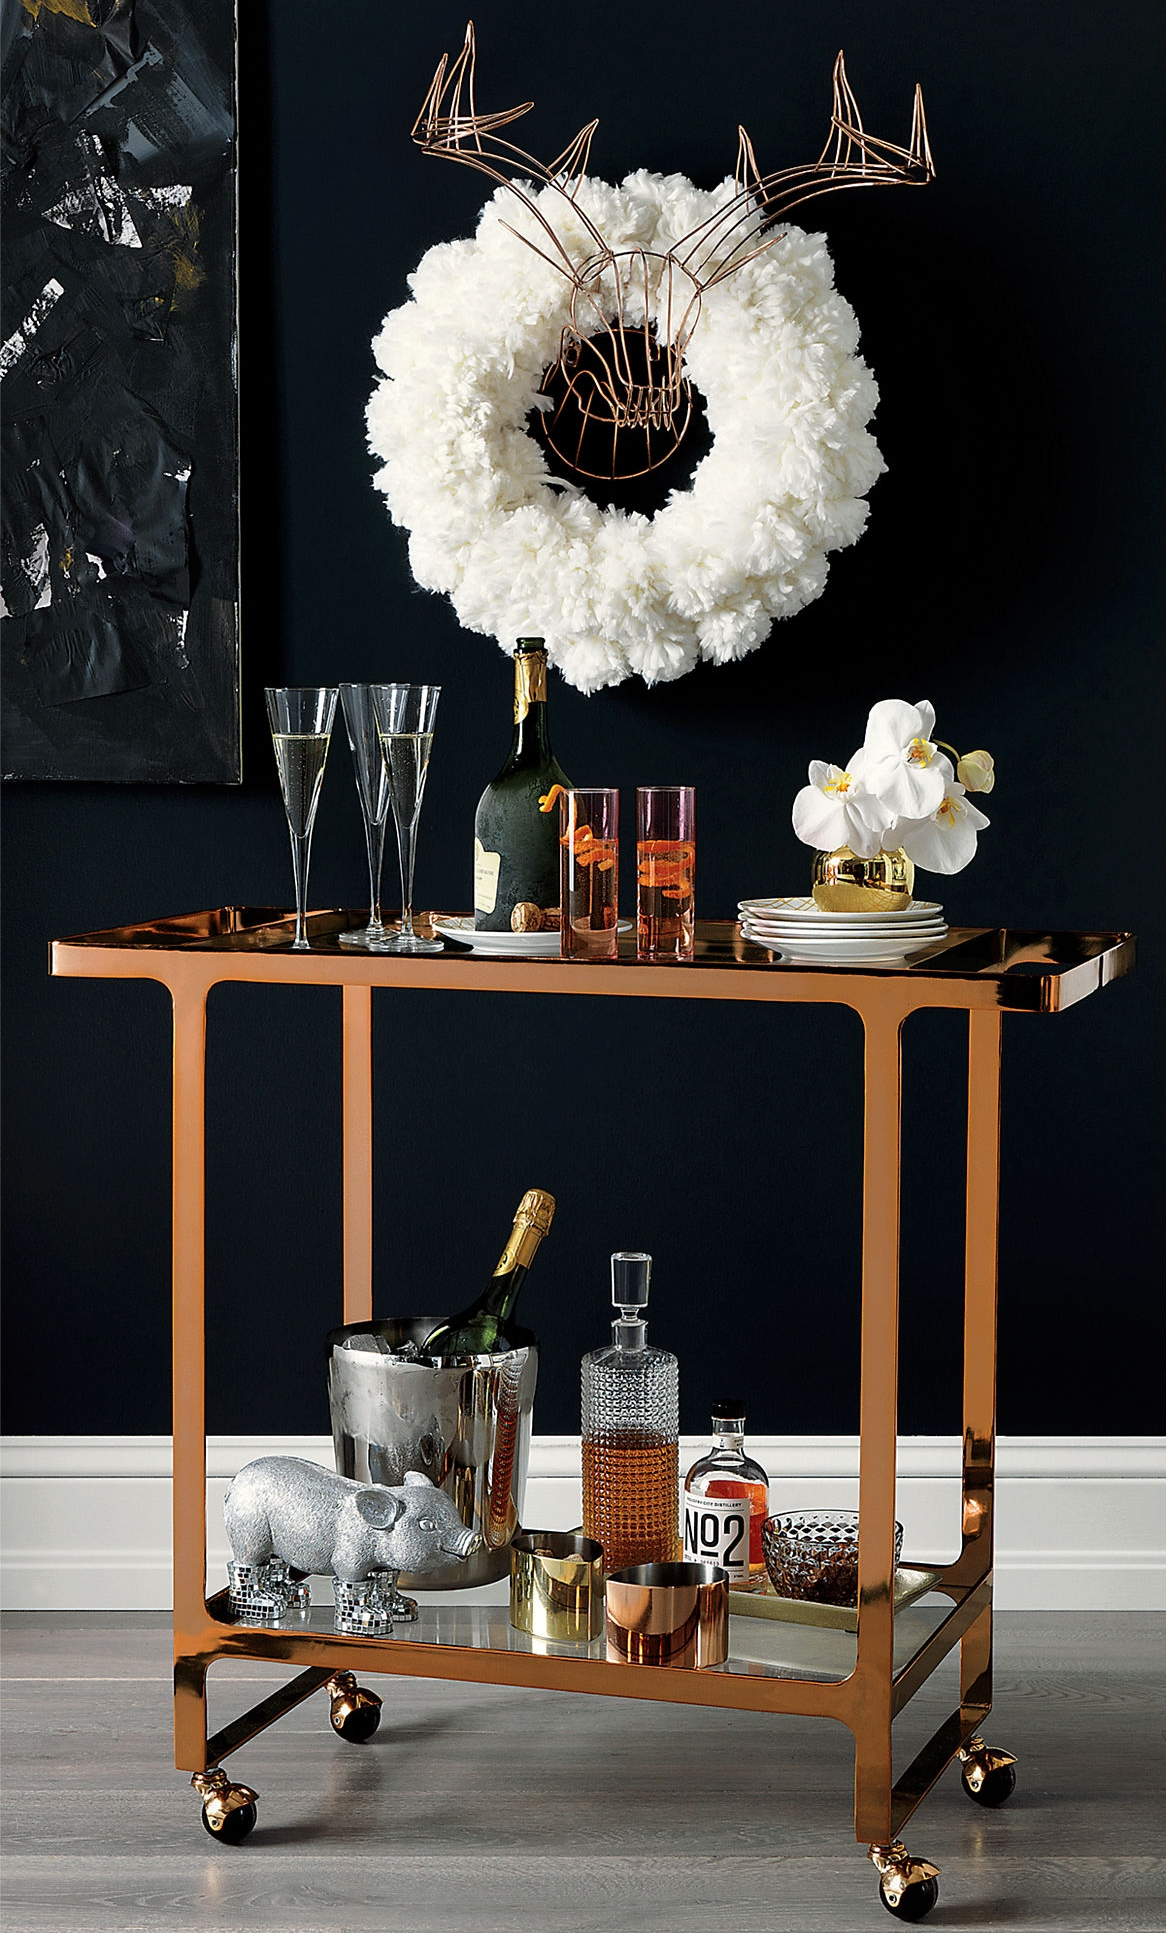 Copper bar cart from CB2